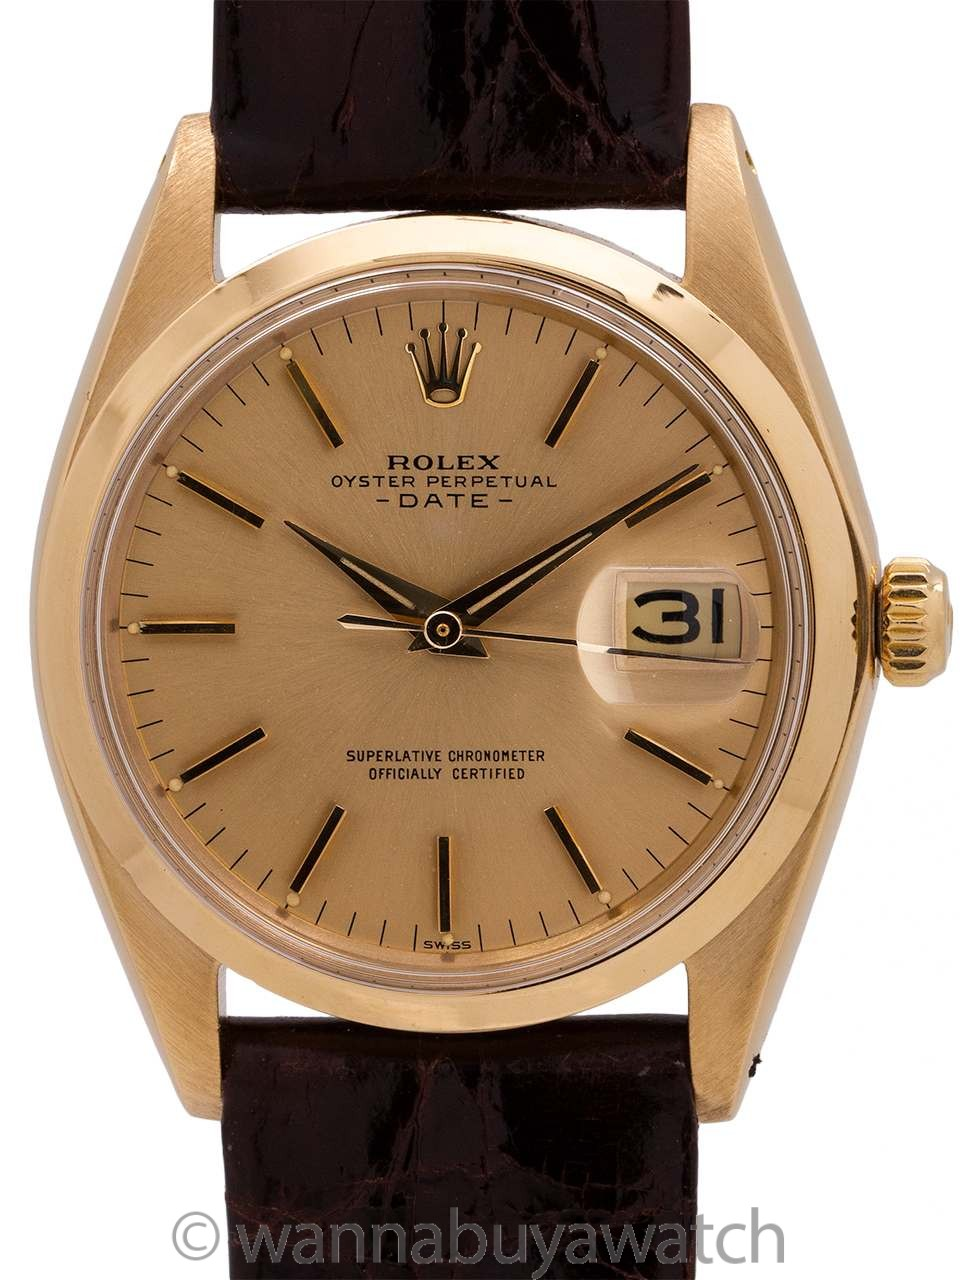 5898dce9ad4 Rolex Oyster Perpetual Date ref 1500 14K YG circa 1958